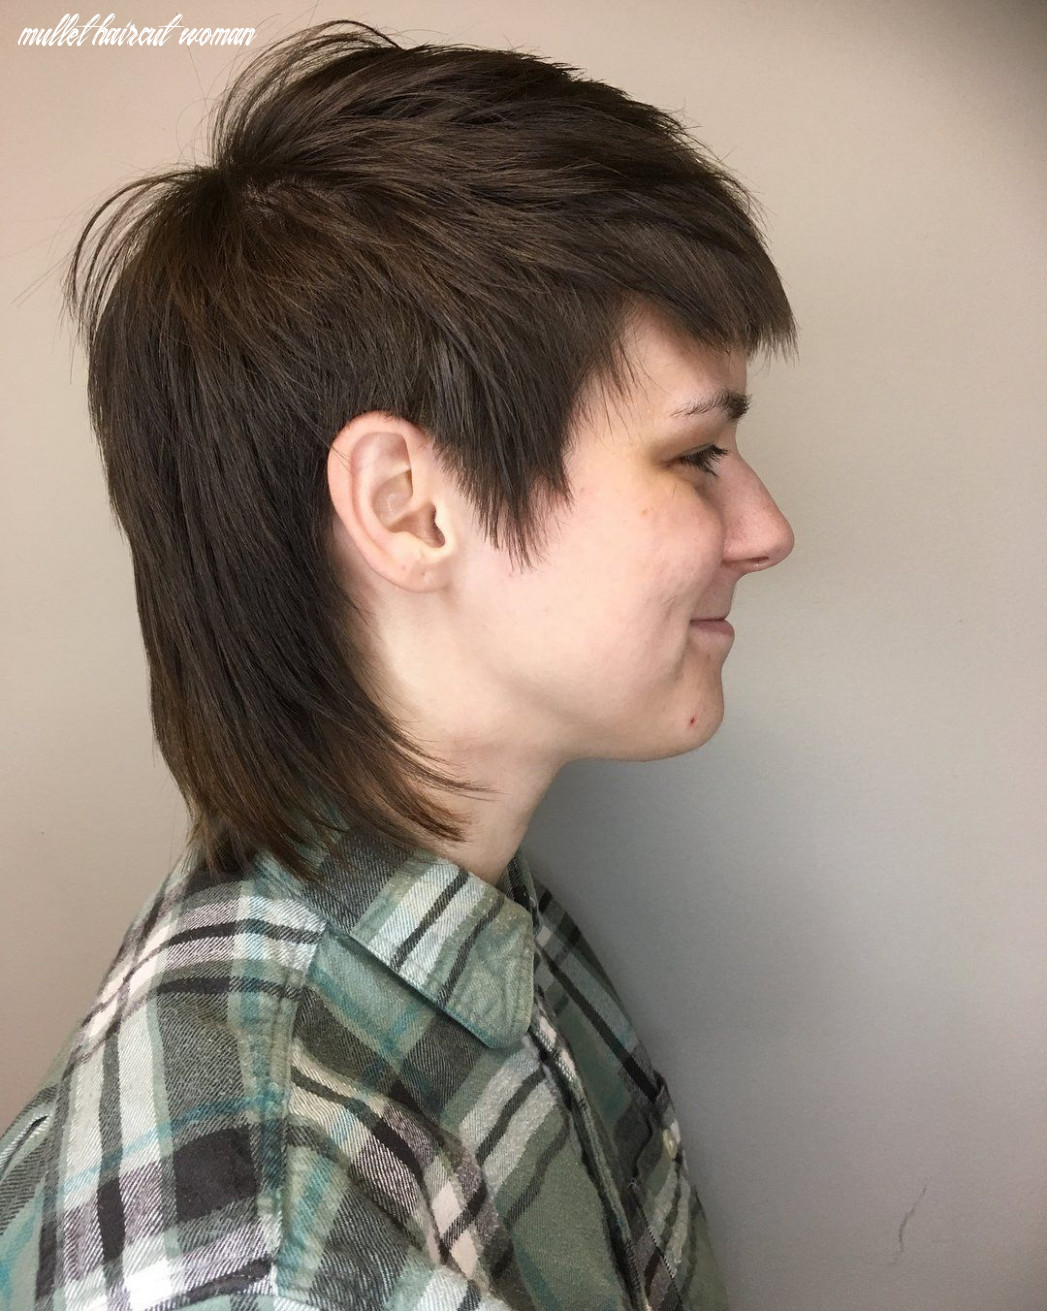 Cool Short Mullet Hairstyles For Women | Mullet hairstyle, Mullet ...